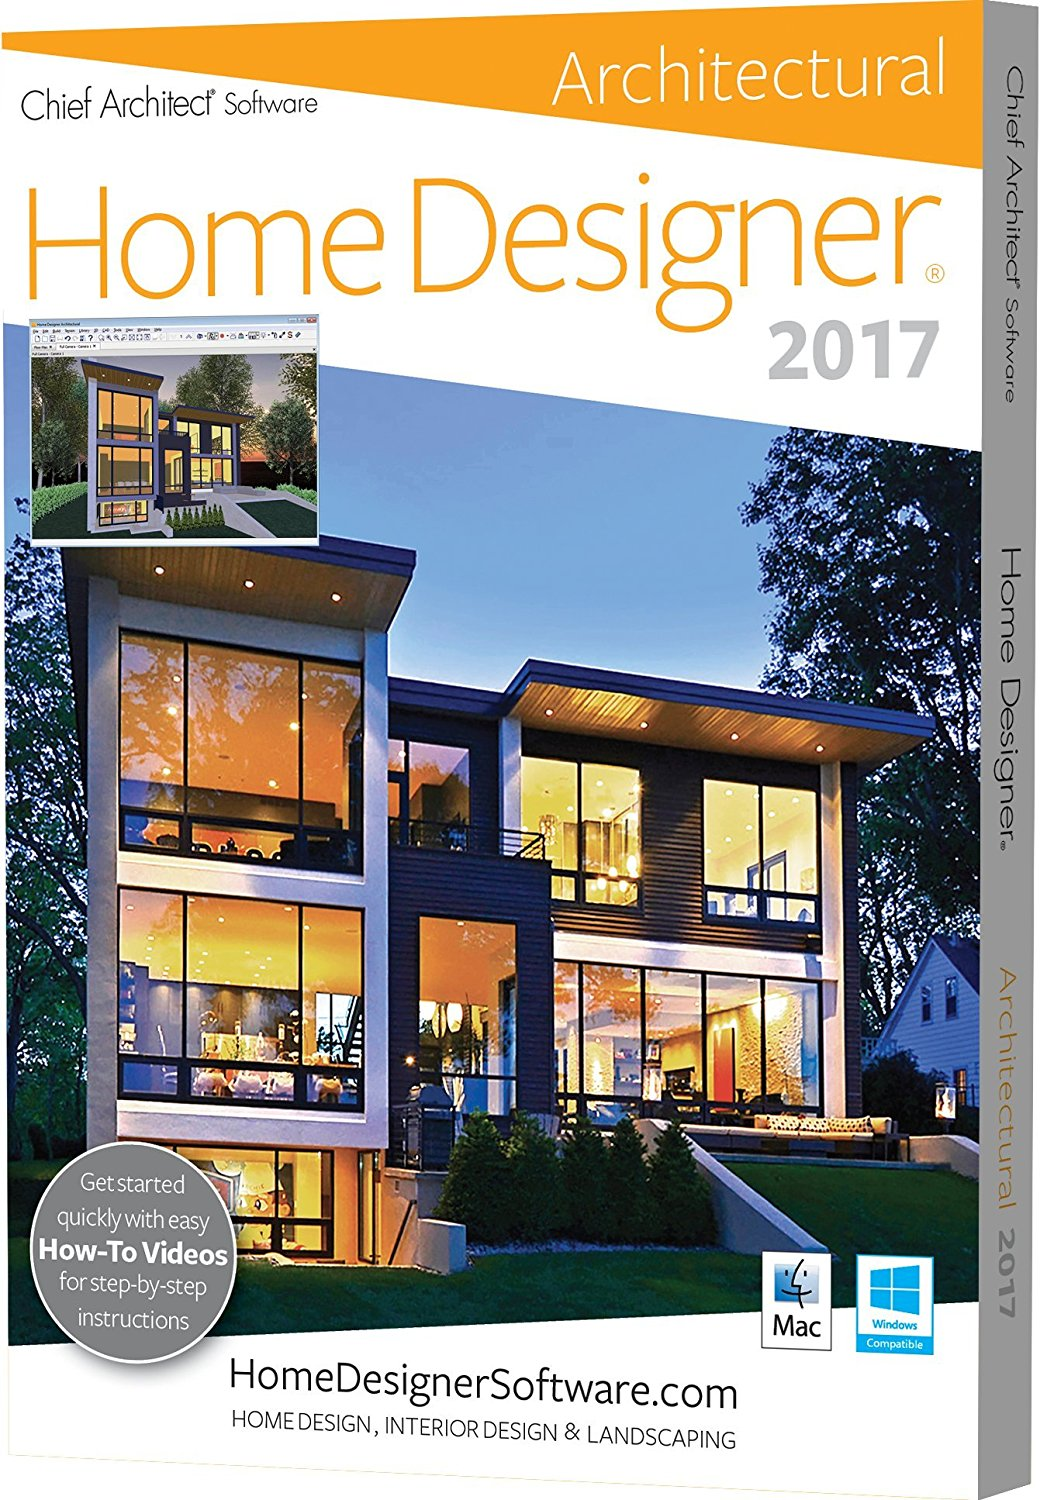 Home designer pro 2018 crack keygen free full download Home maker software